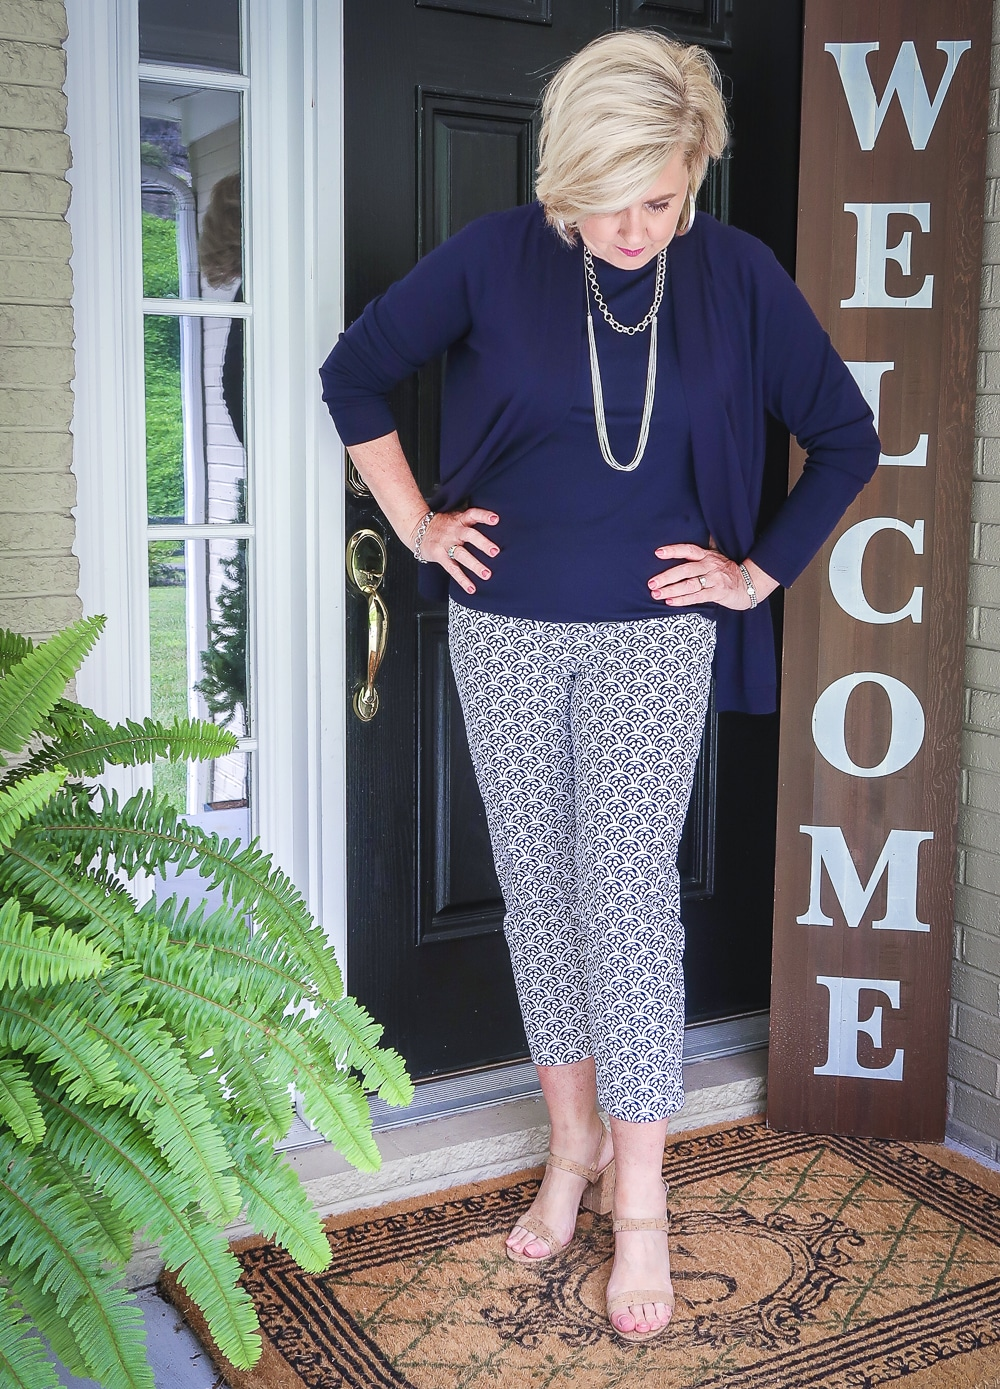 Fashion Blogger 50 Is Not Old is looking down while wearing a navy cardigan with a navy tank top and blue and white ankle pants